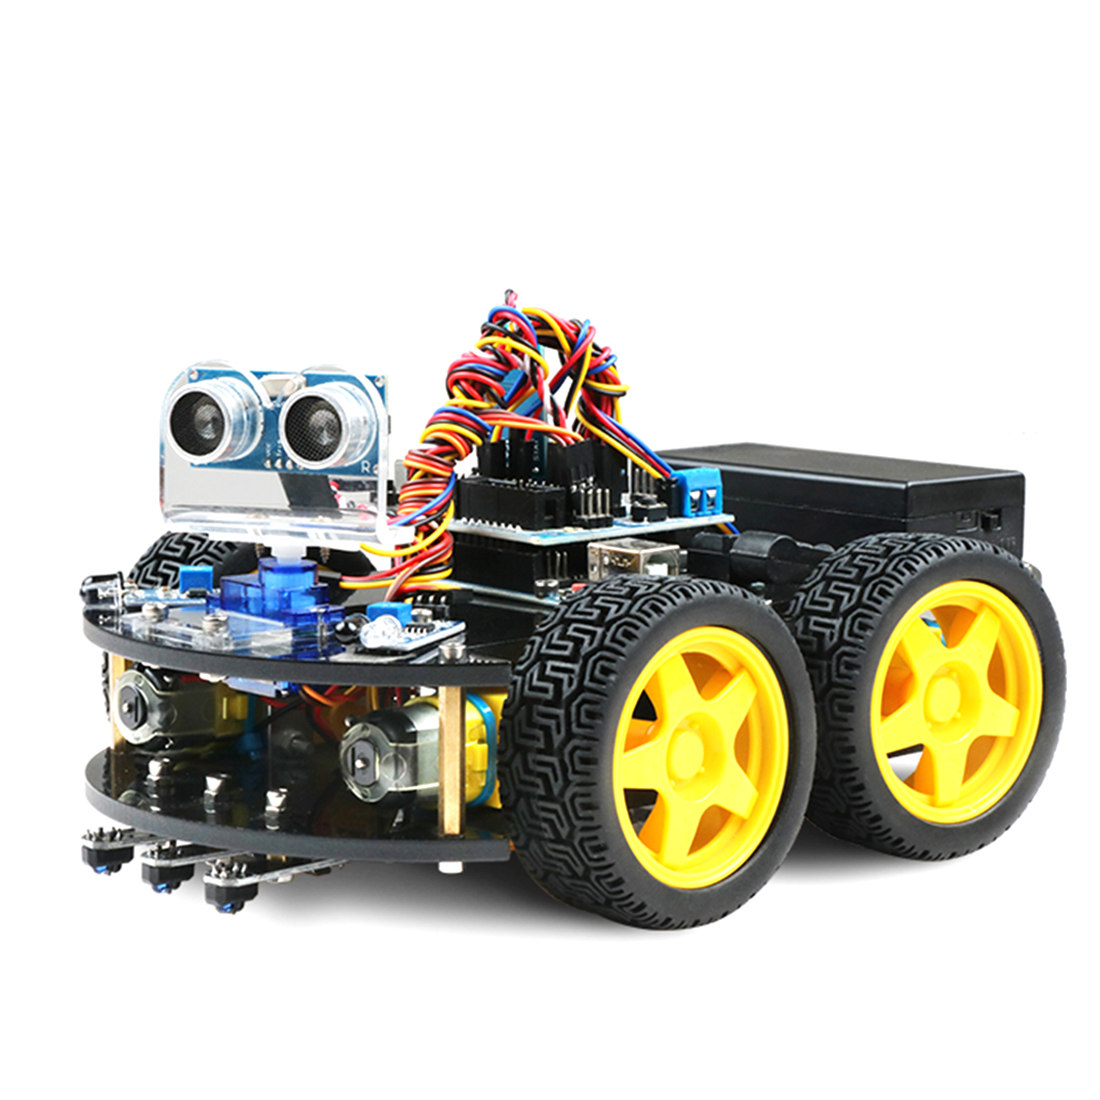 DIY Obstacle Avoidance Smart Programmable Robot Car Educational Learning Kit For BLE